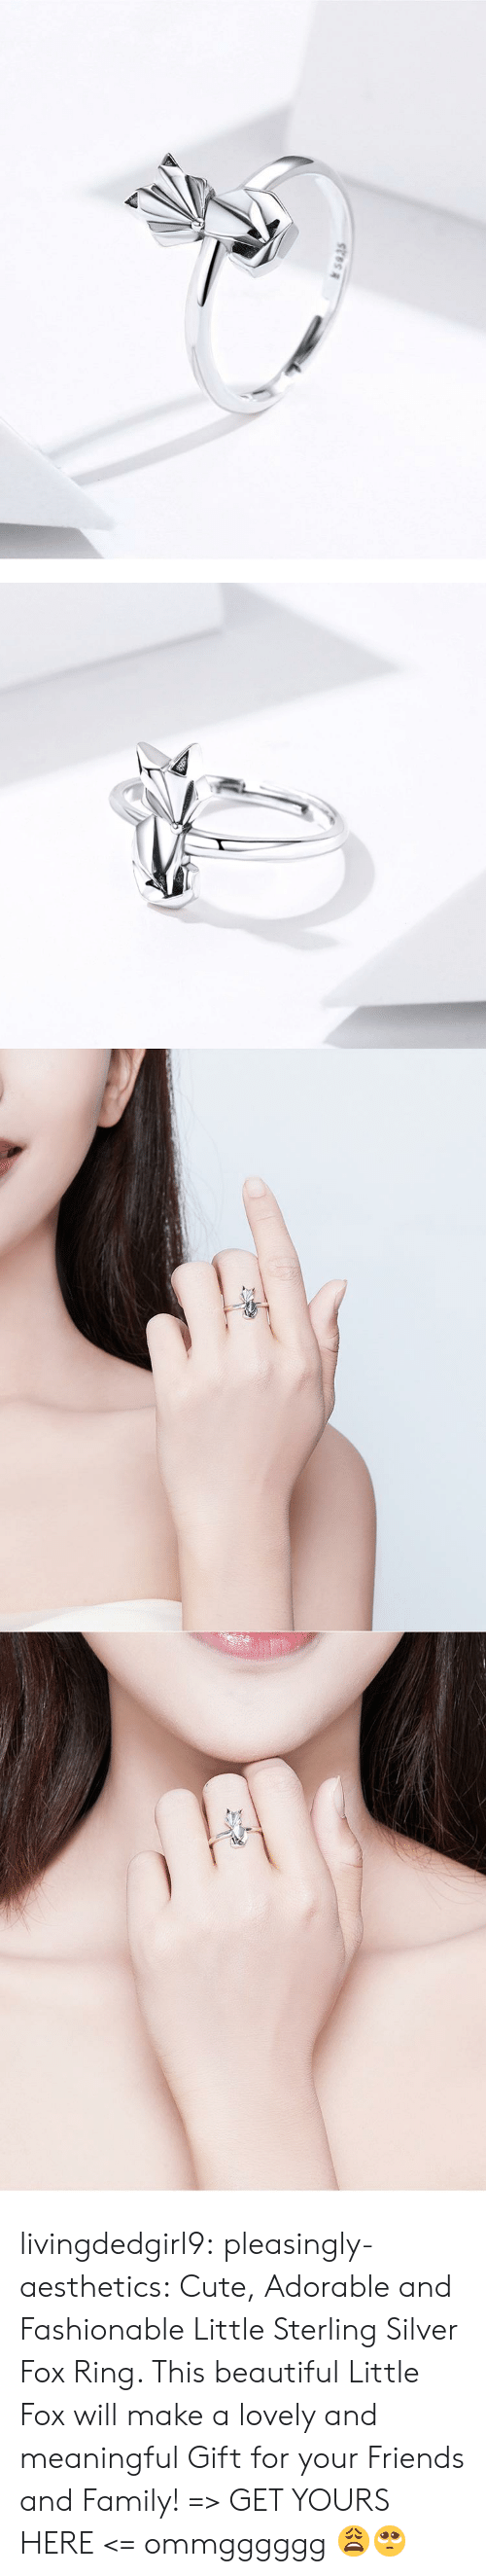 Beautiful, Cute, and Family: s935 livingdedgirl9:  pleasingly-aesthetics: Cute, Adorable and Fashionable Little Sterling Silver Fox Ring. This beautiful Little Fox will make a lovely and meaningful Gift for your Friends and Family! => GET YOURS HERE <=   ommgggggg 😩🥺